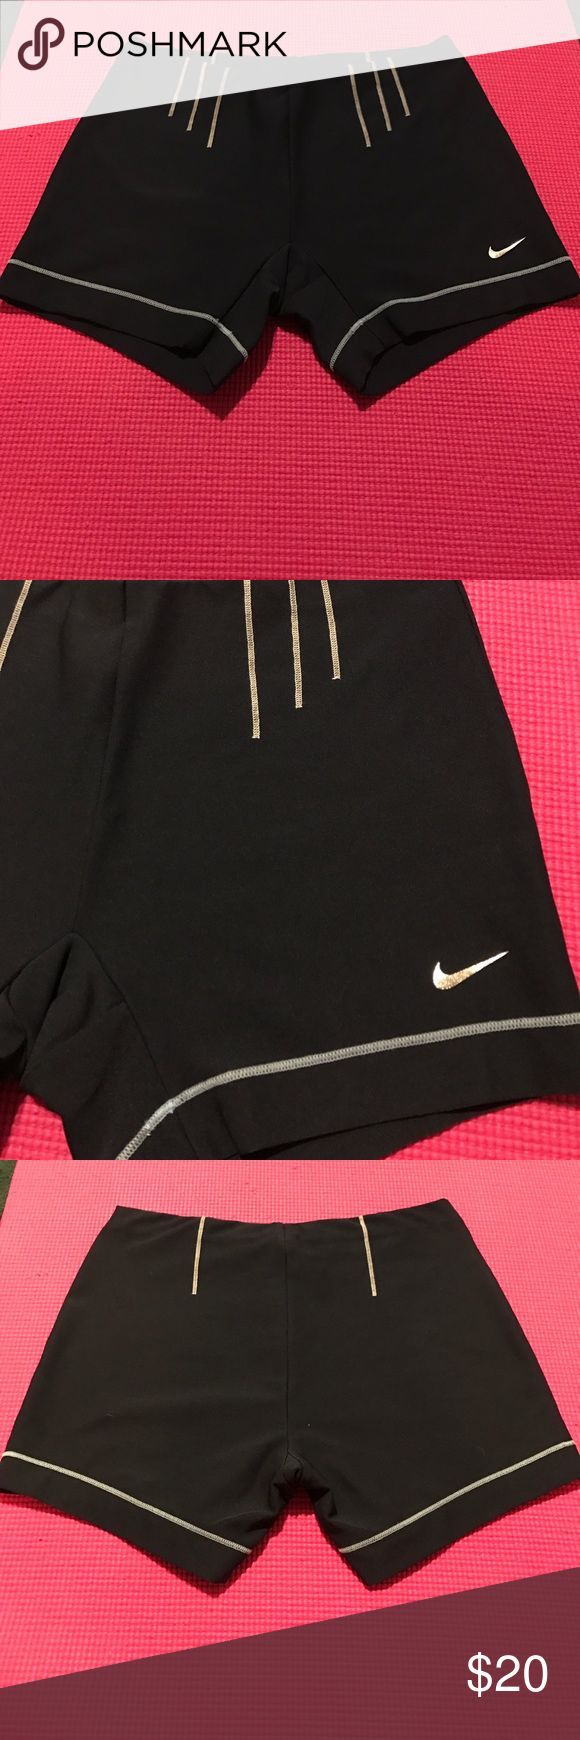 Women's Nike shorts Women's Nike shorts spandex dri fit size medium8-10. It's hard to see the colors in the pictures! These shorts are a navy blue the stitching at the top is white and the stitching at bottom is a light blue with a metallic silver swoosh! Super cute and worn once! Nike Shorts